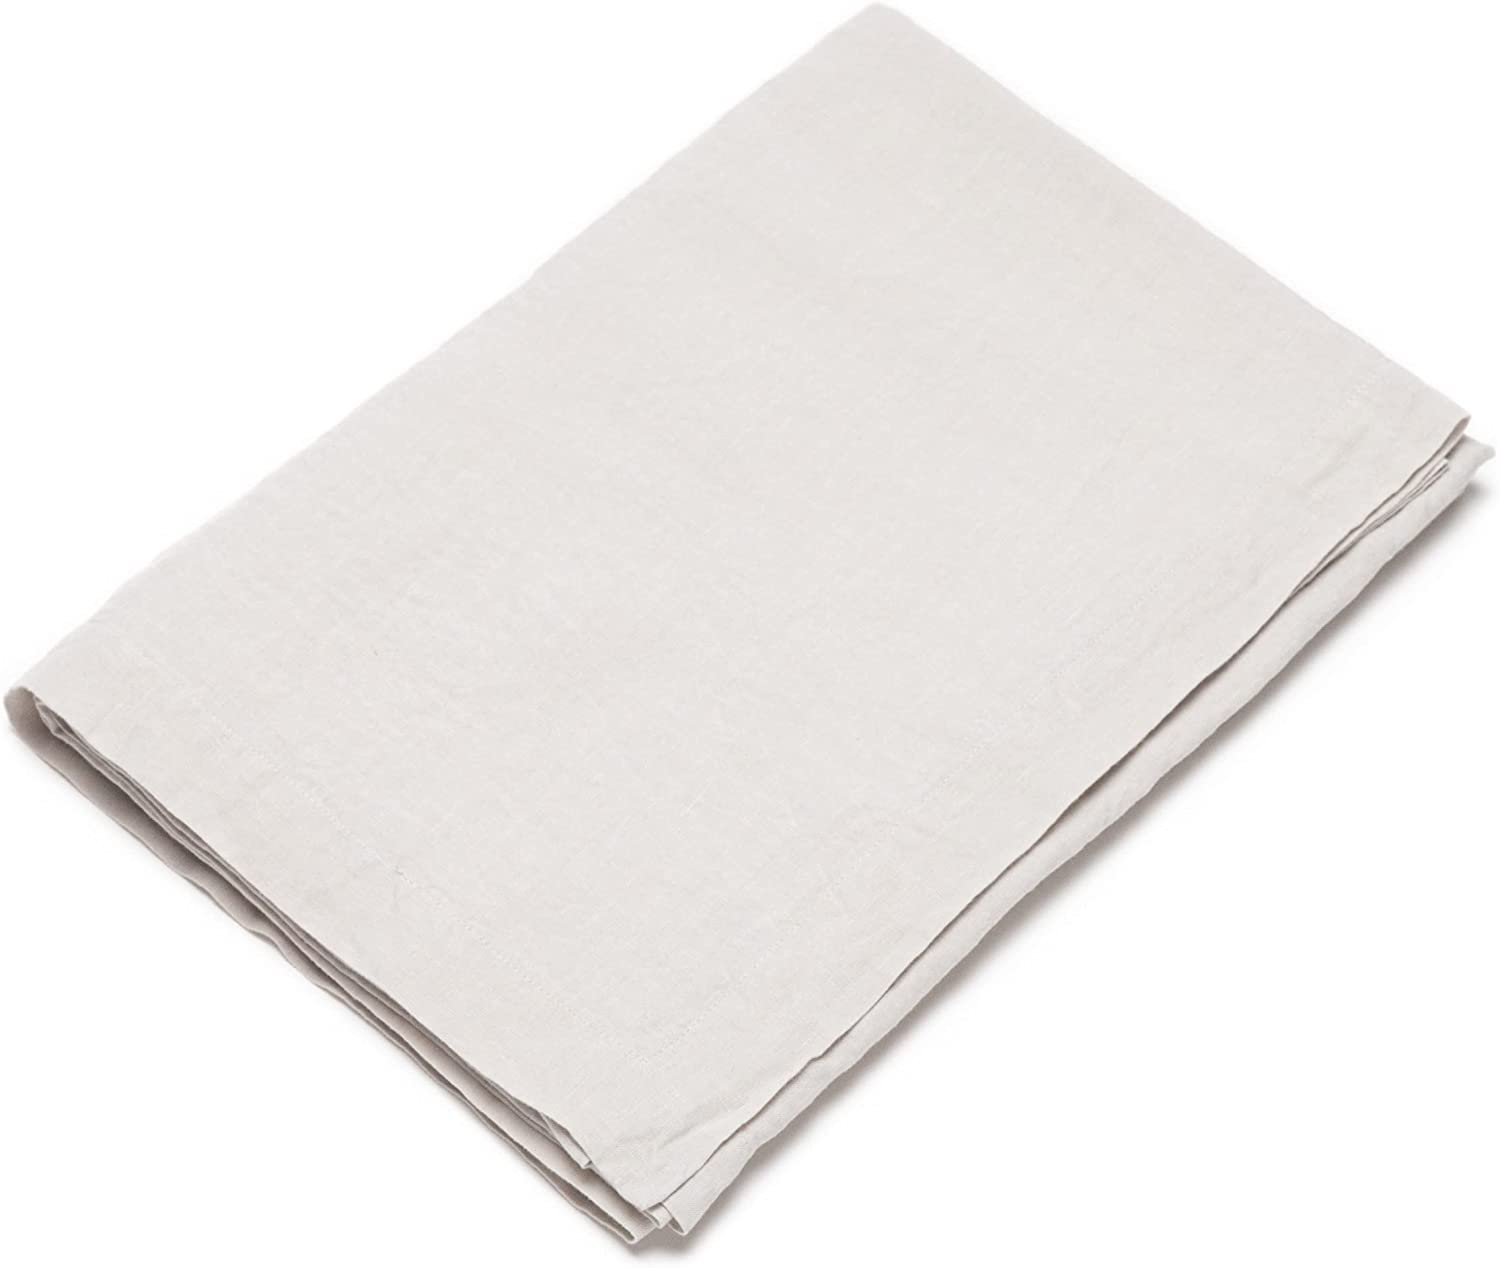 LinenMe Stone Washed Tablecloth Washington Mall Max 72% OFF 67 by Silver 126